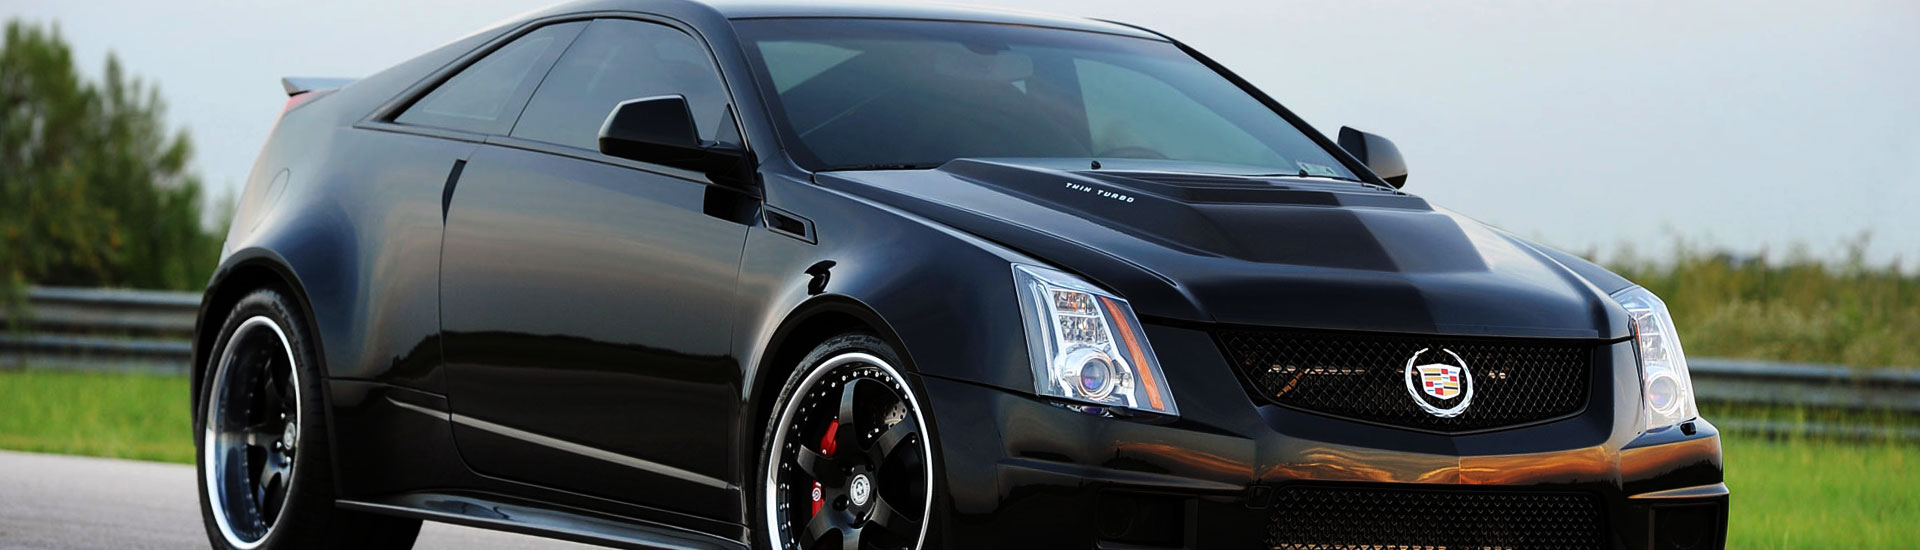 Cadillac Window Tint